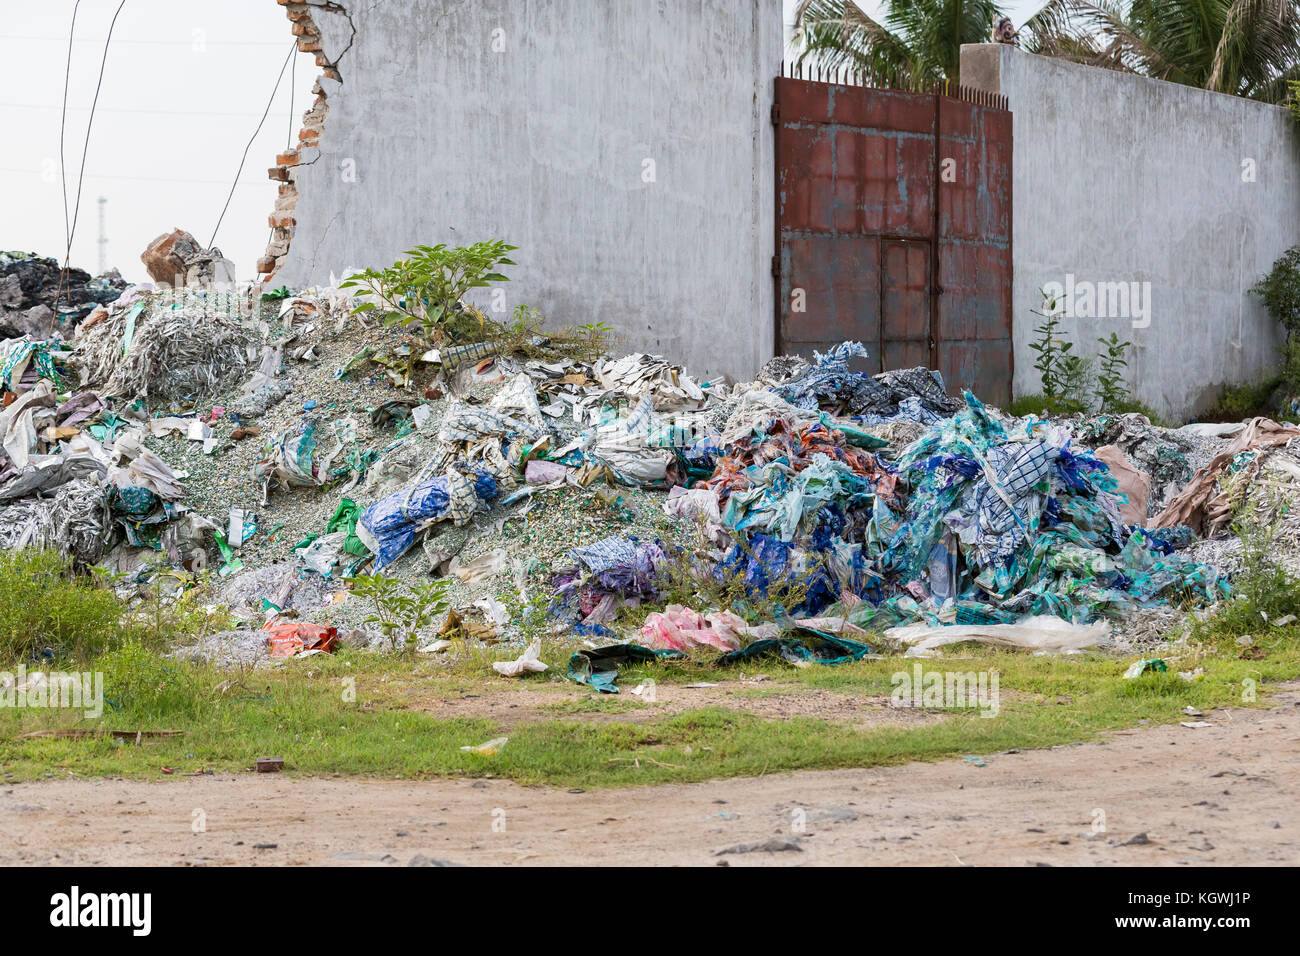 waste plastic bottles and other types of plastic waste near the house in the street city, India, Tamil Nadu - Stock Image